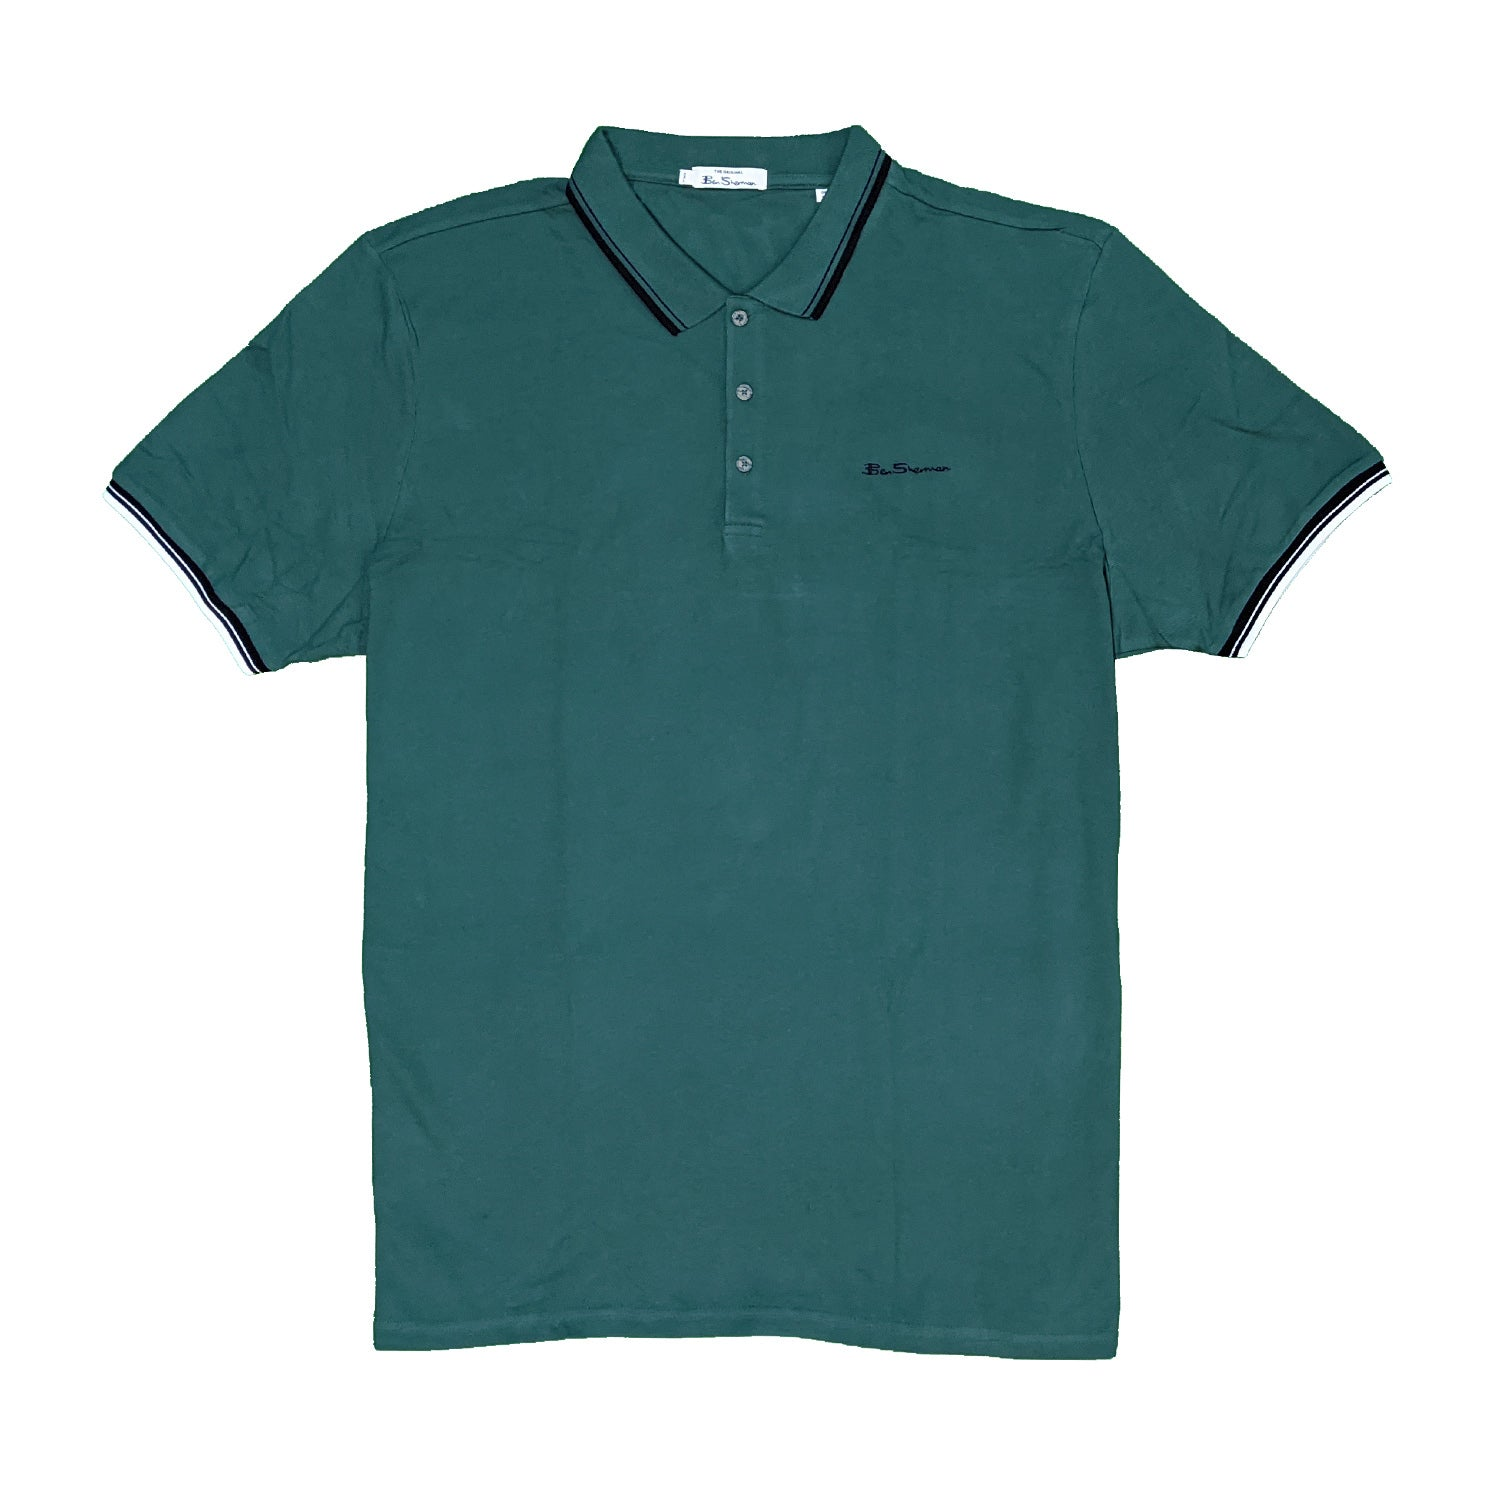 Ben Sherman Signature Polo - 0059310IL - Teal 1